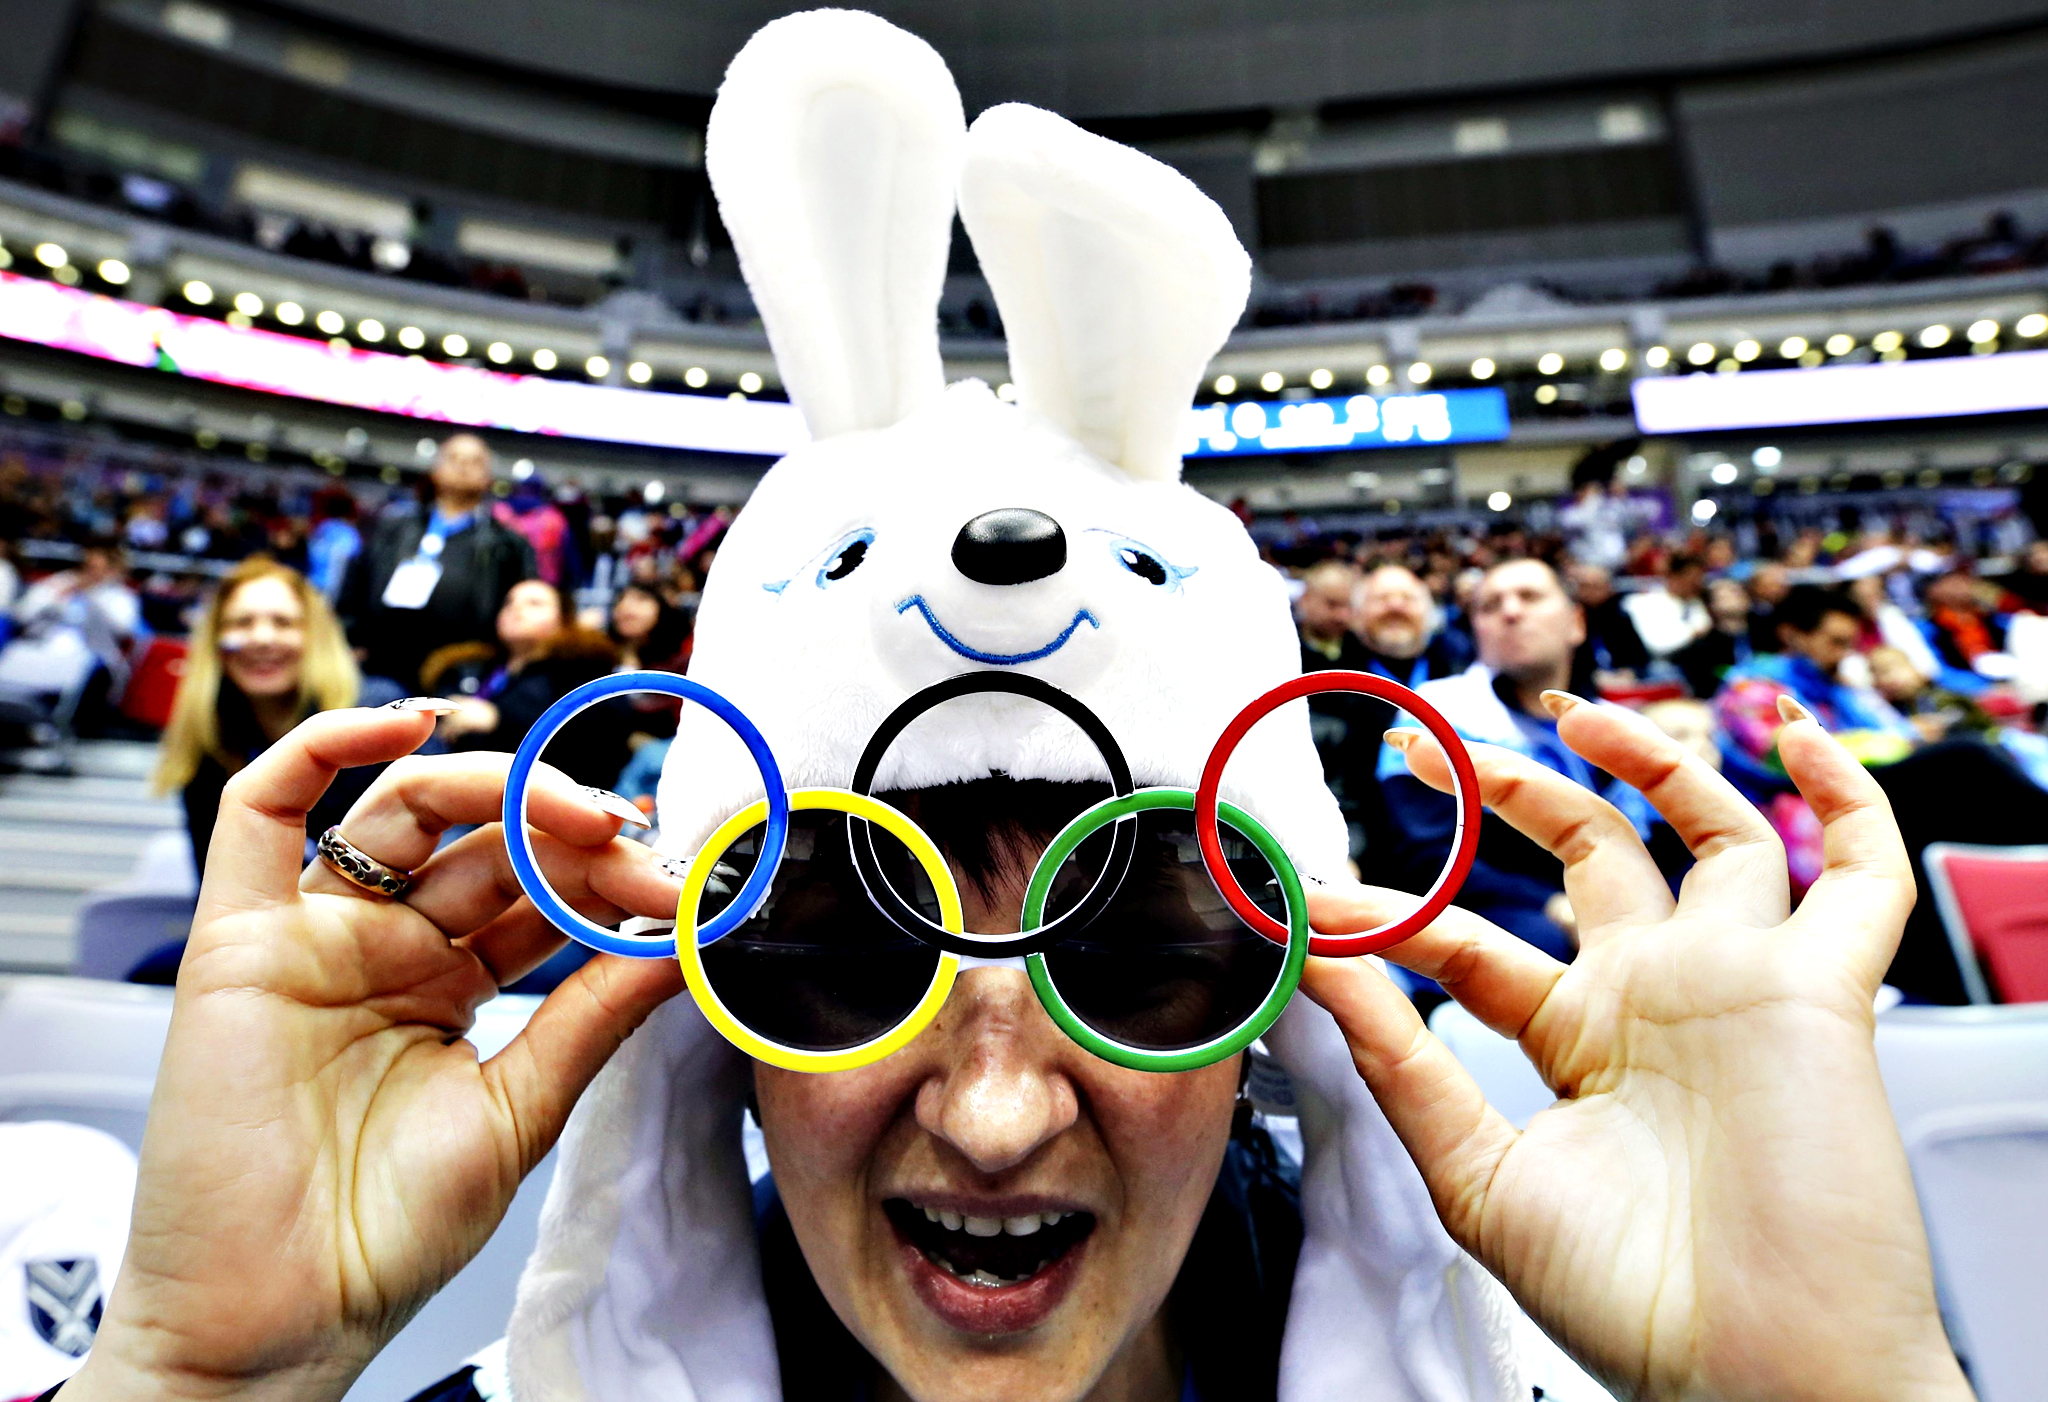 A fan wears sunglasses in the shape of the Olympic rings during the women's ice hockey bronze medal game between Sweden and Switzerland at the Sochi 2014 Winter Olympic Games...A fan wears sunglasses in the shape of the Olympic rings during the women's ice hockey bronze medal game between Sweden and Switzerland at the Sochi 2014 Winter Olympic Games February 20, 2014.